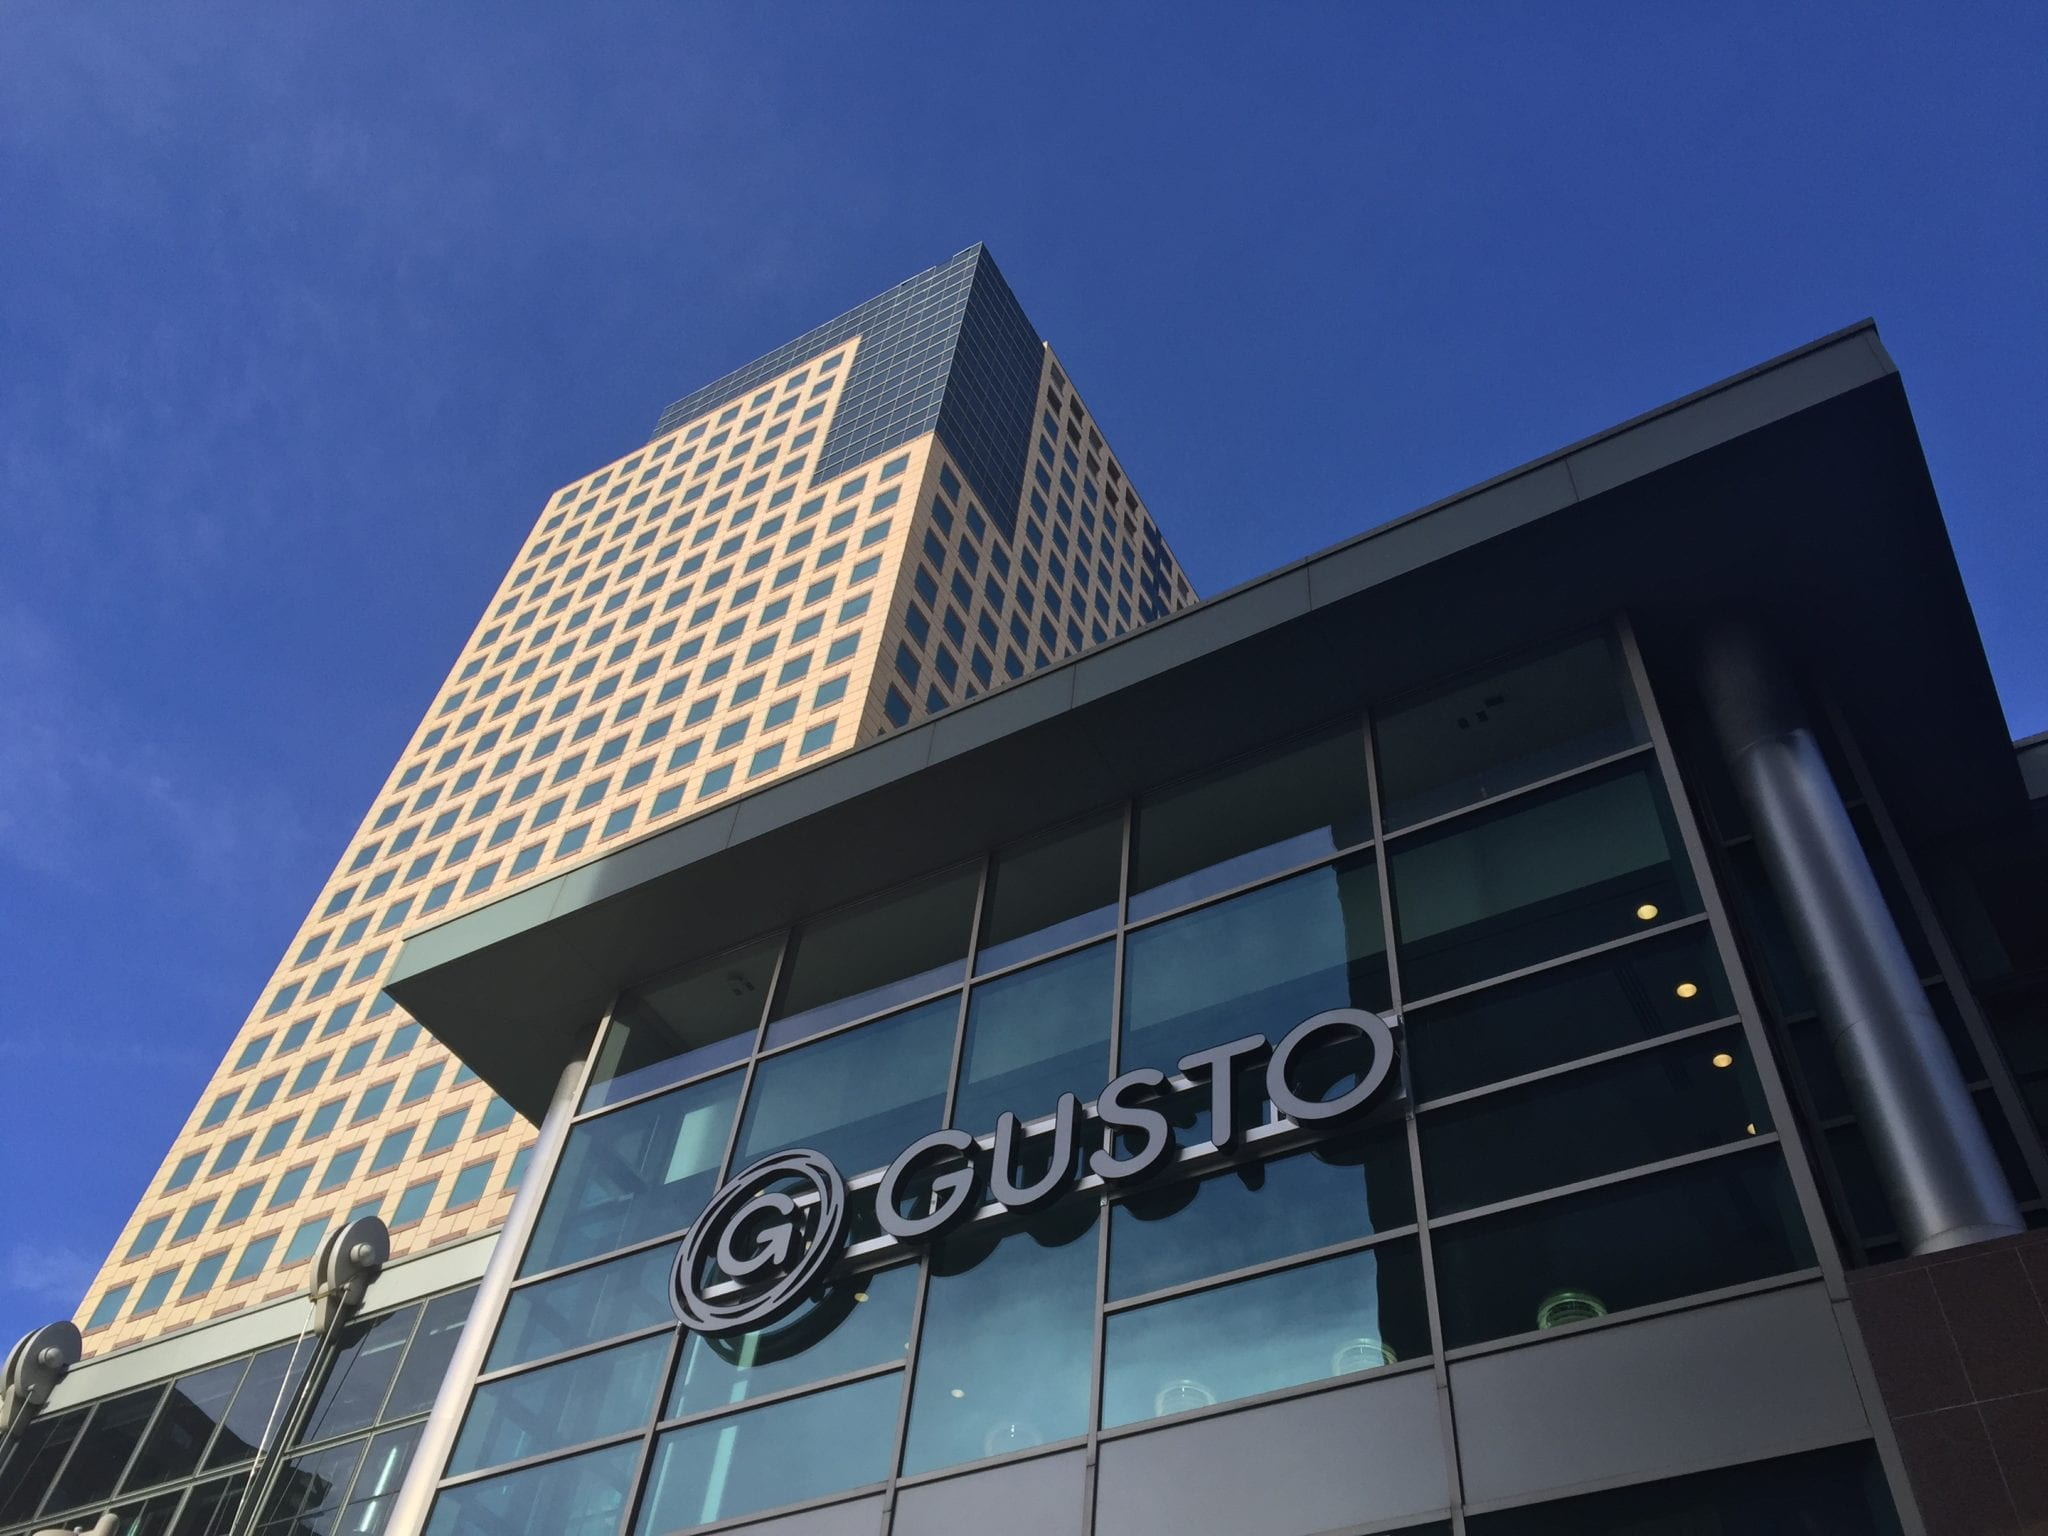 gusto exterior